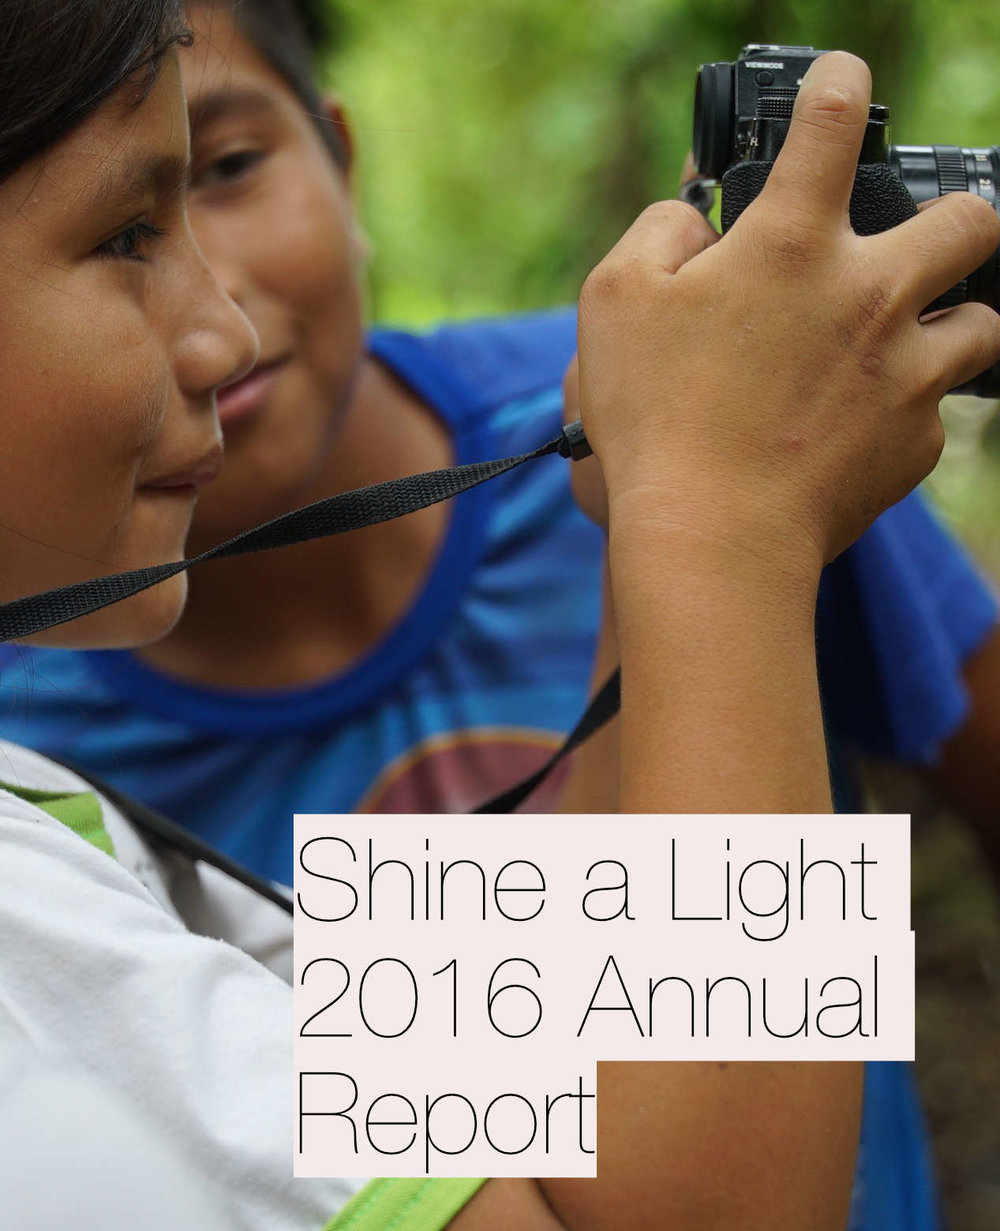 Shine a Light Annual Report, 201  6